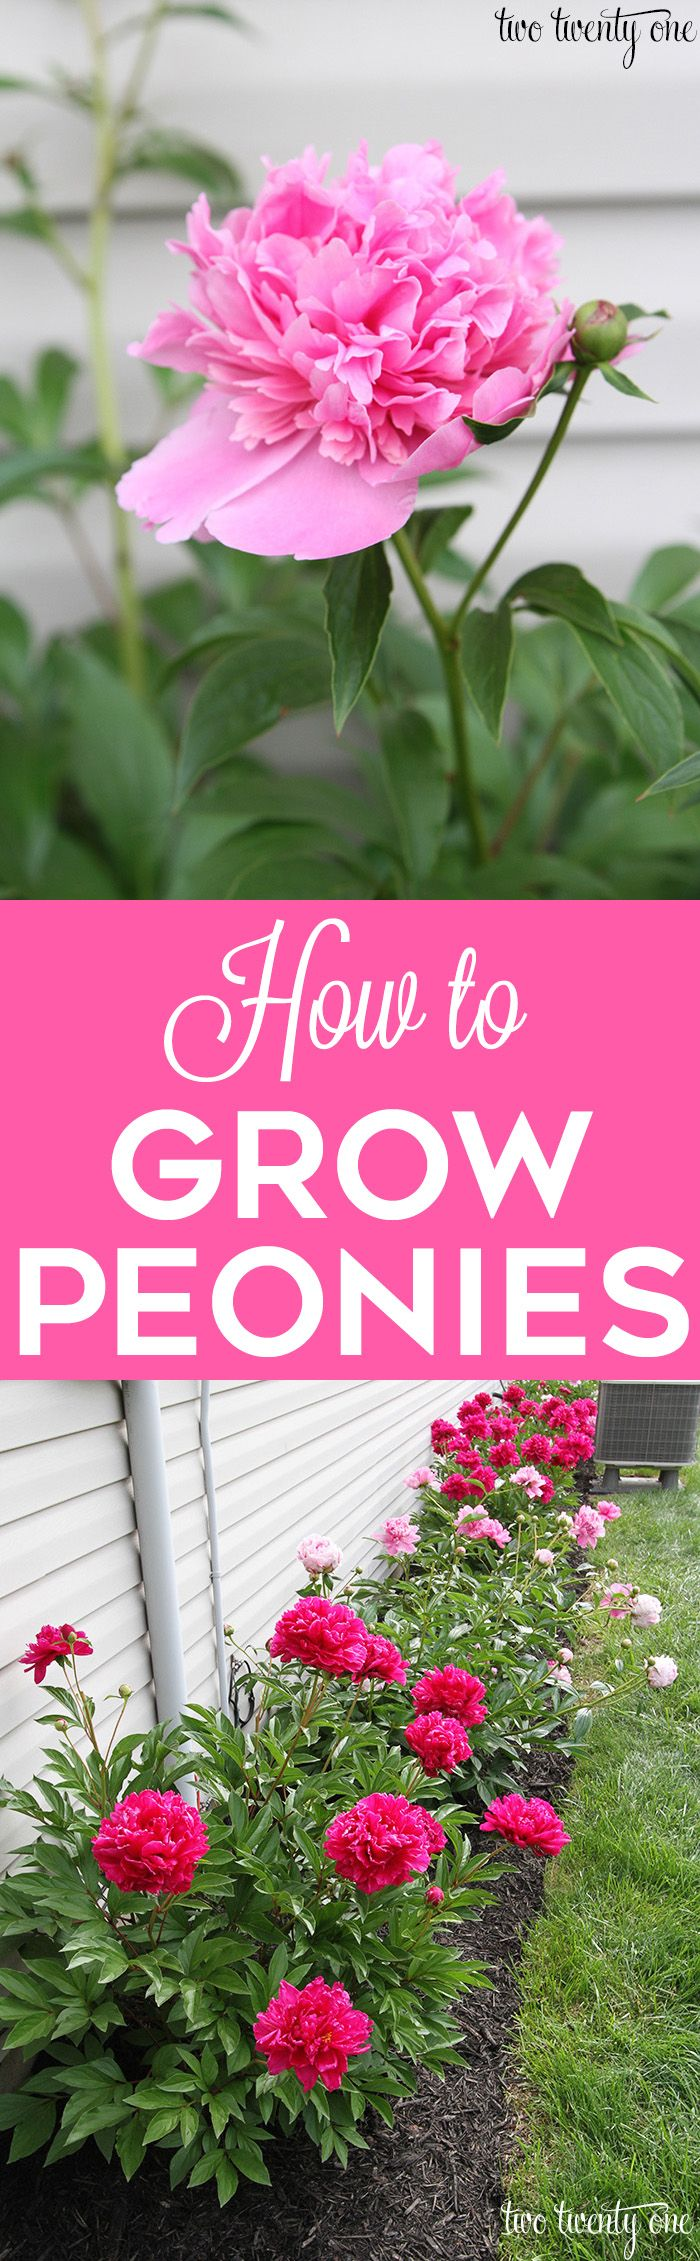 GREAT tips on how to grow peonies! Popular Pins! Gardening Pins!